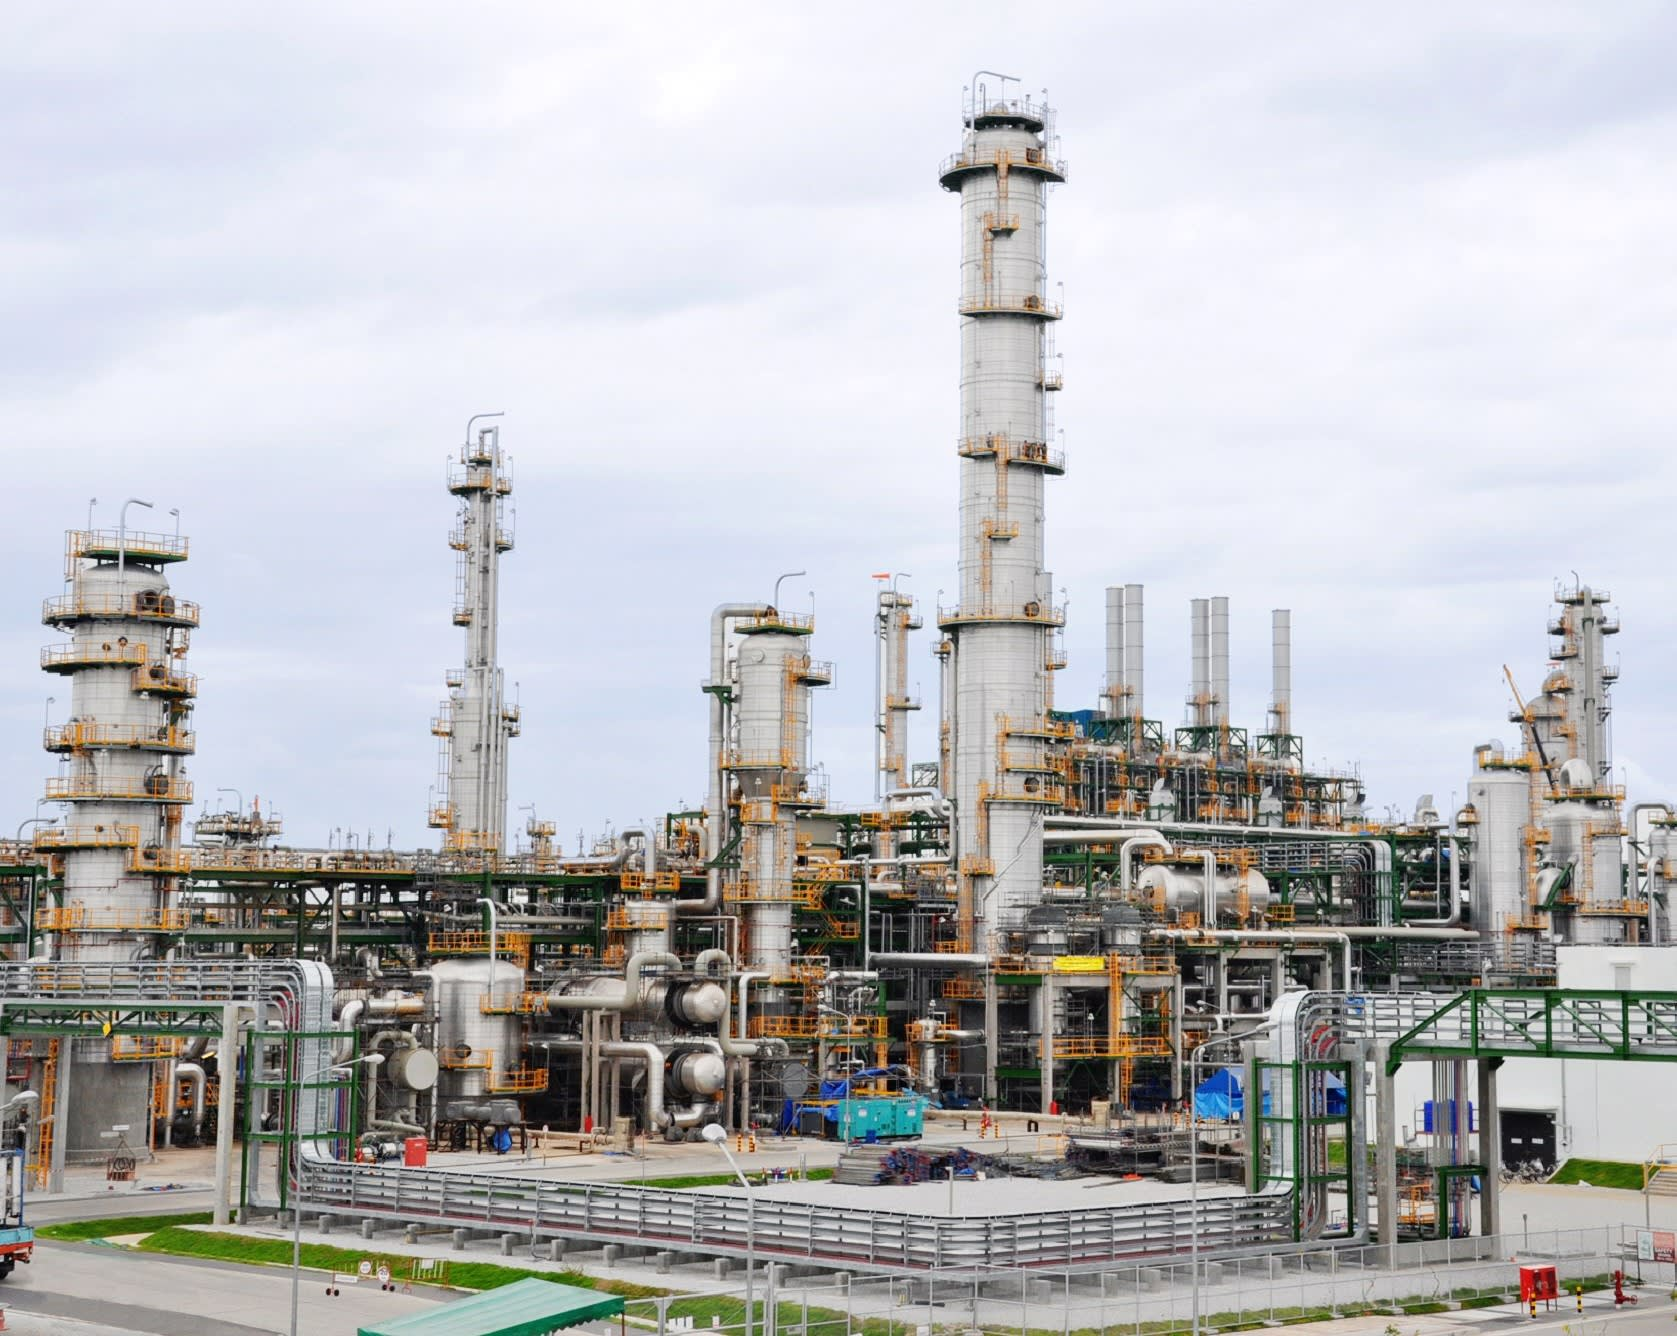 Asian energy companies boosting petrochemical outputs - Nikkei Asian